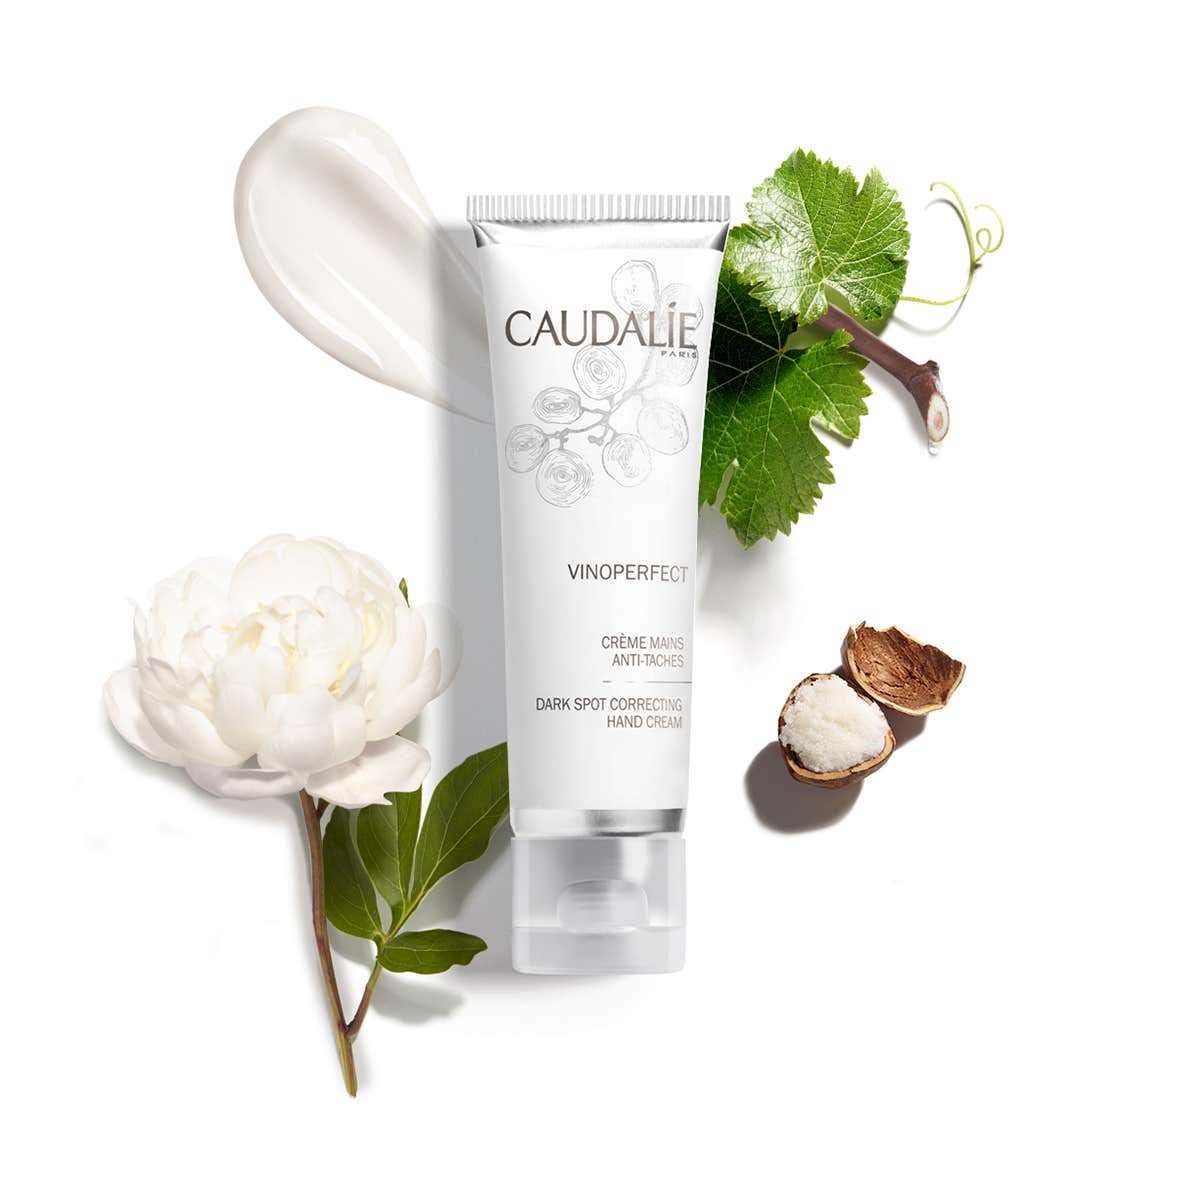 CAUDALIE Vinoperfect dark spot hand cream 50ml NEW